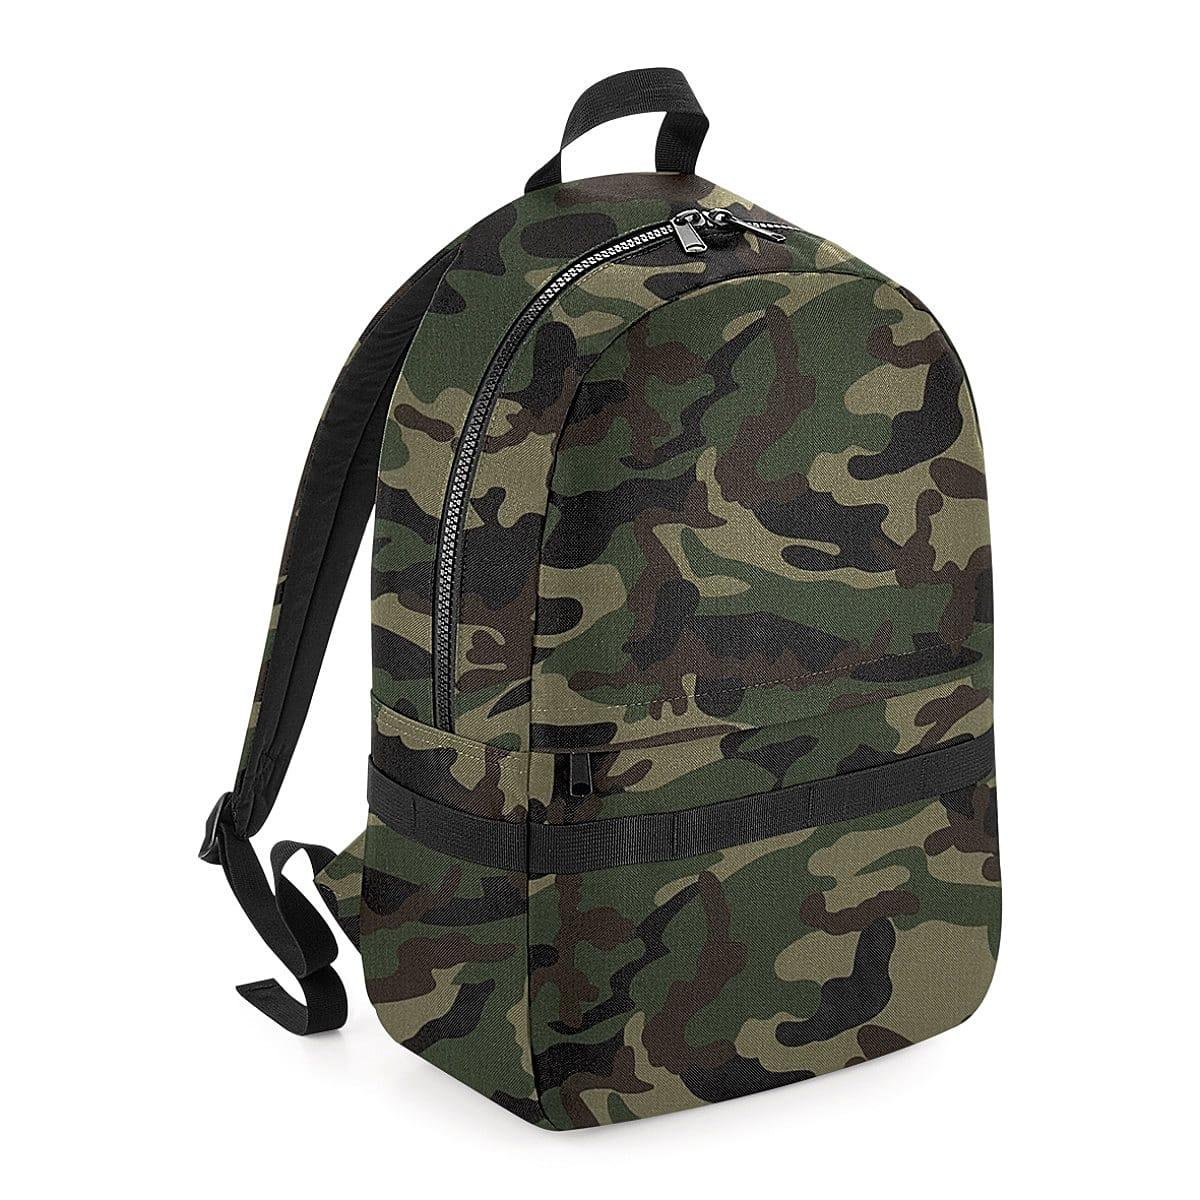 Bagbase Modulr 20 Litre Backpack in Jungle Camo (Product Code: BG240)